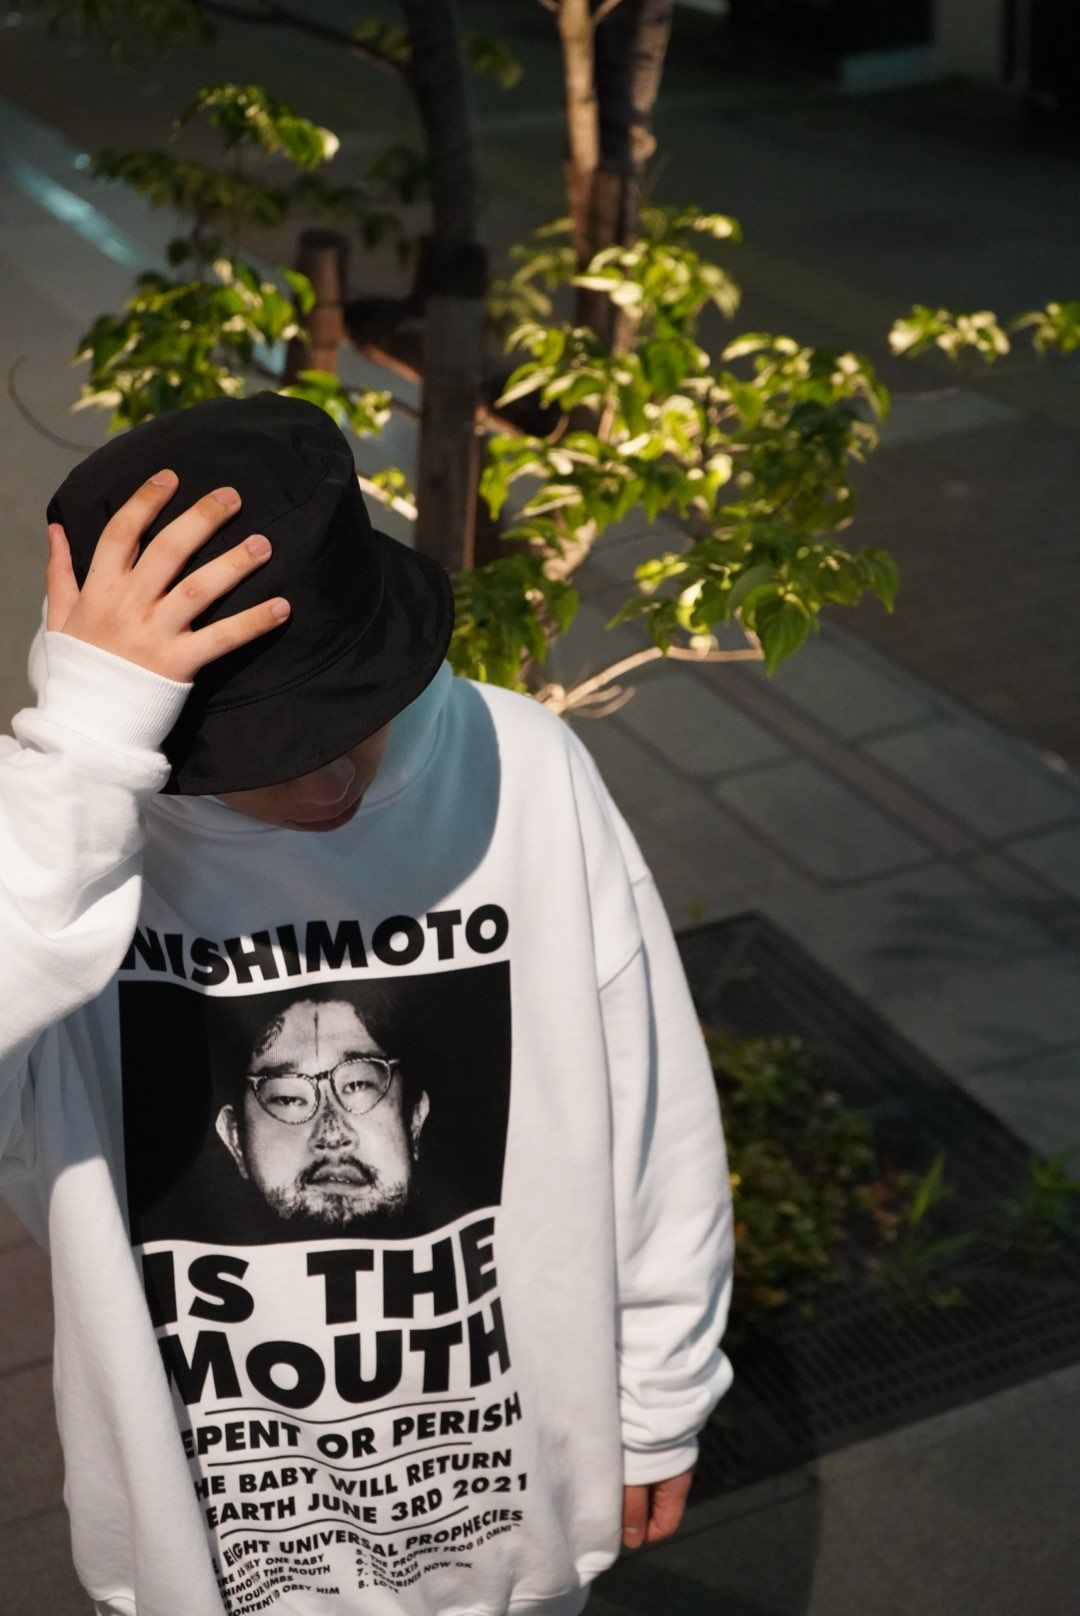 NISIMOTO IS THE / Stylingの写真